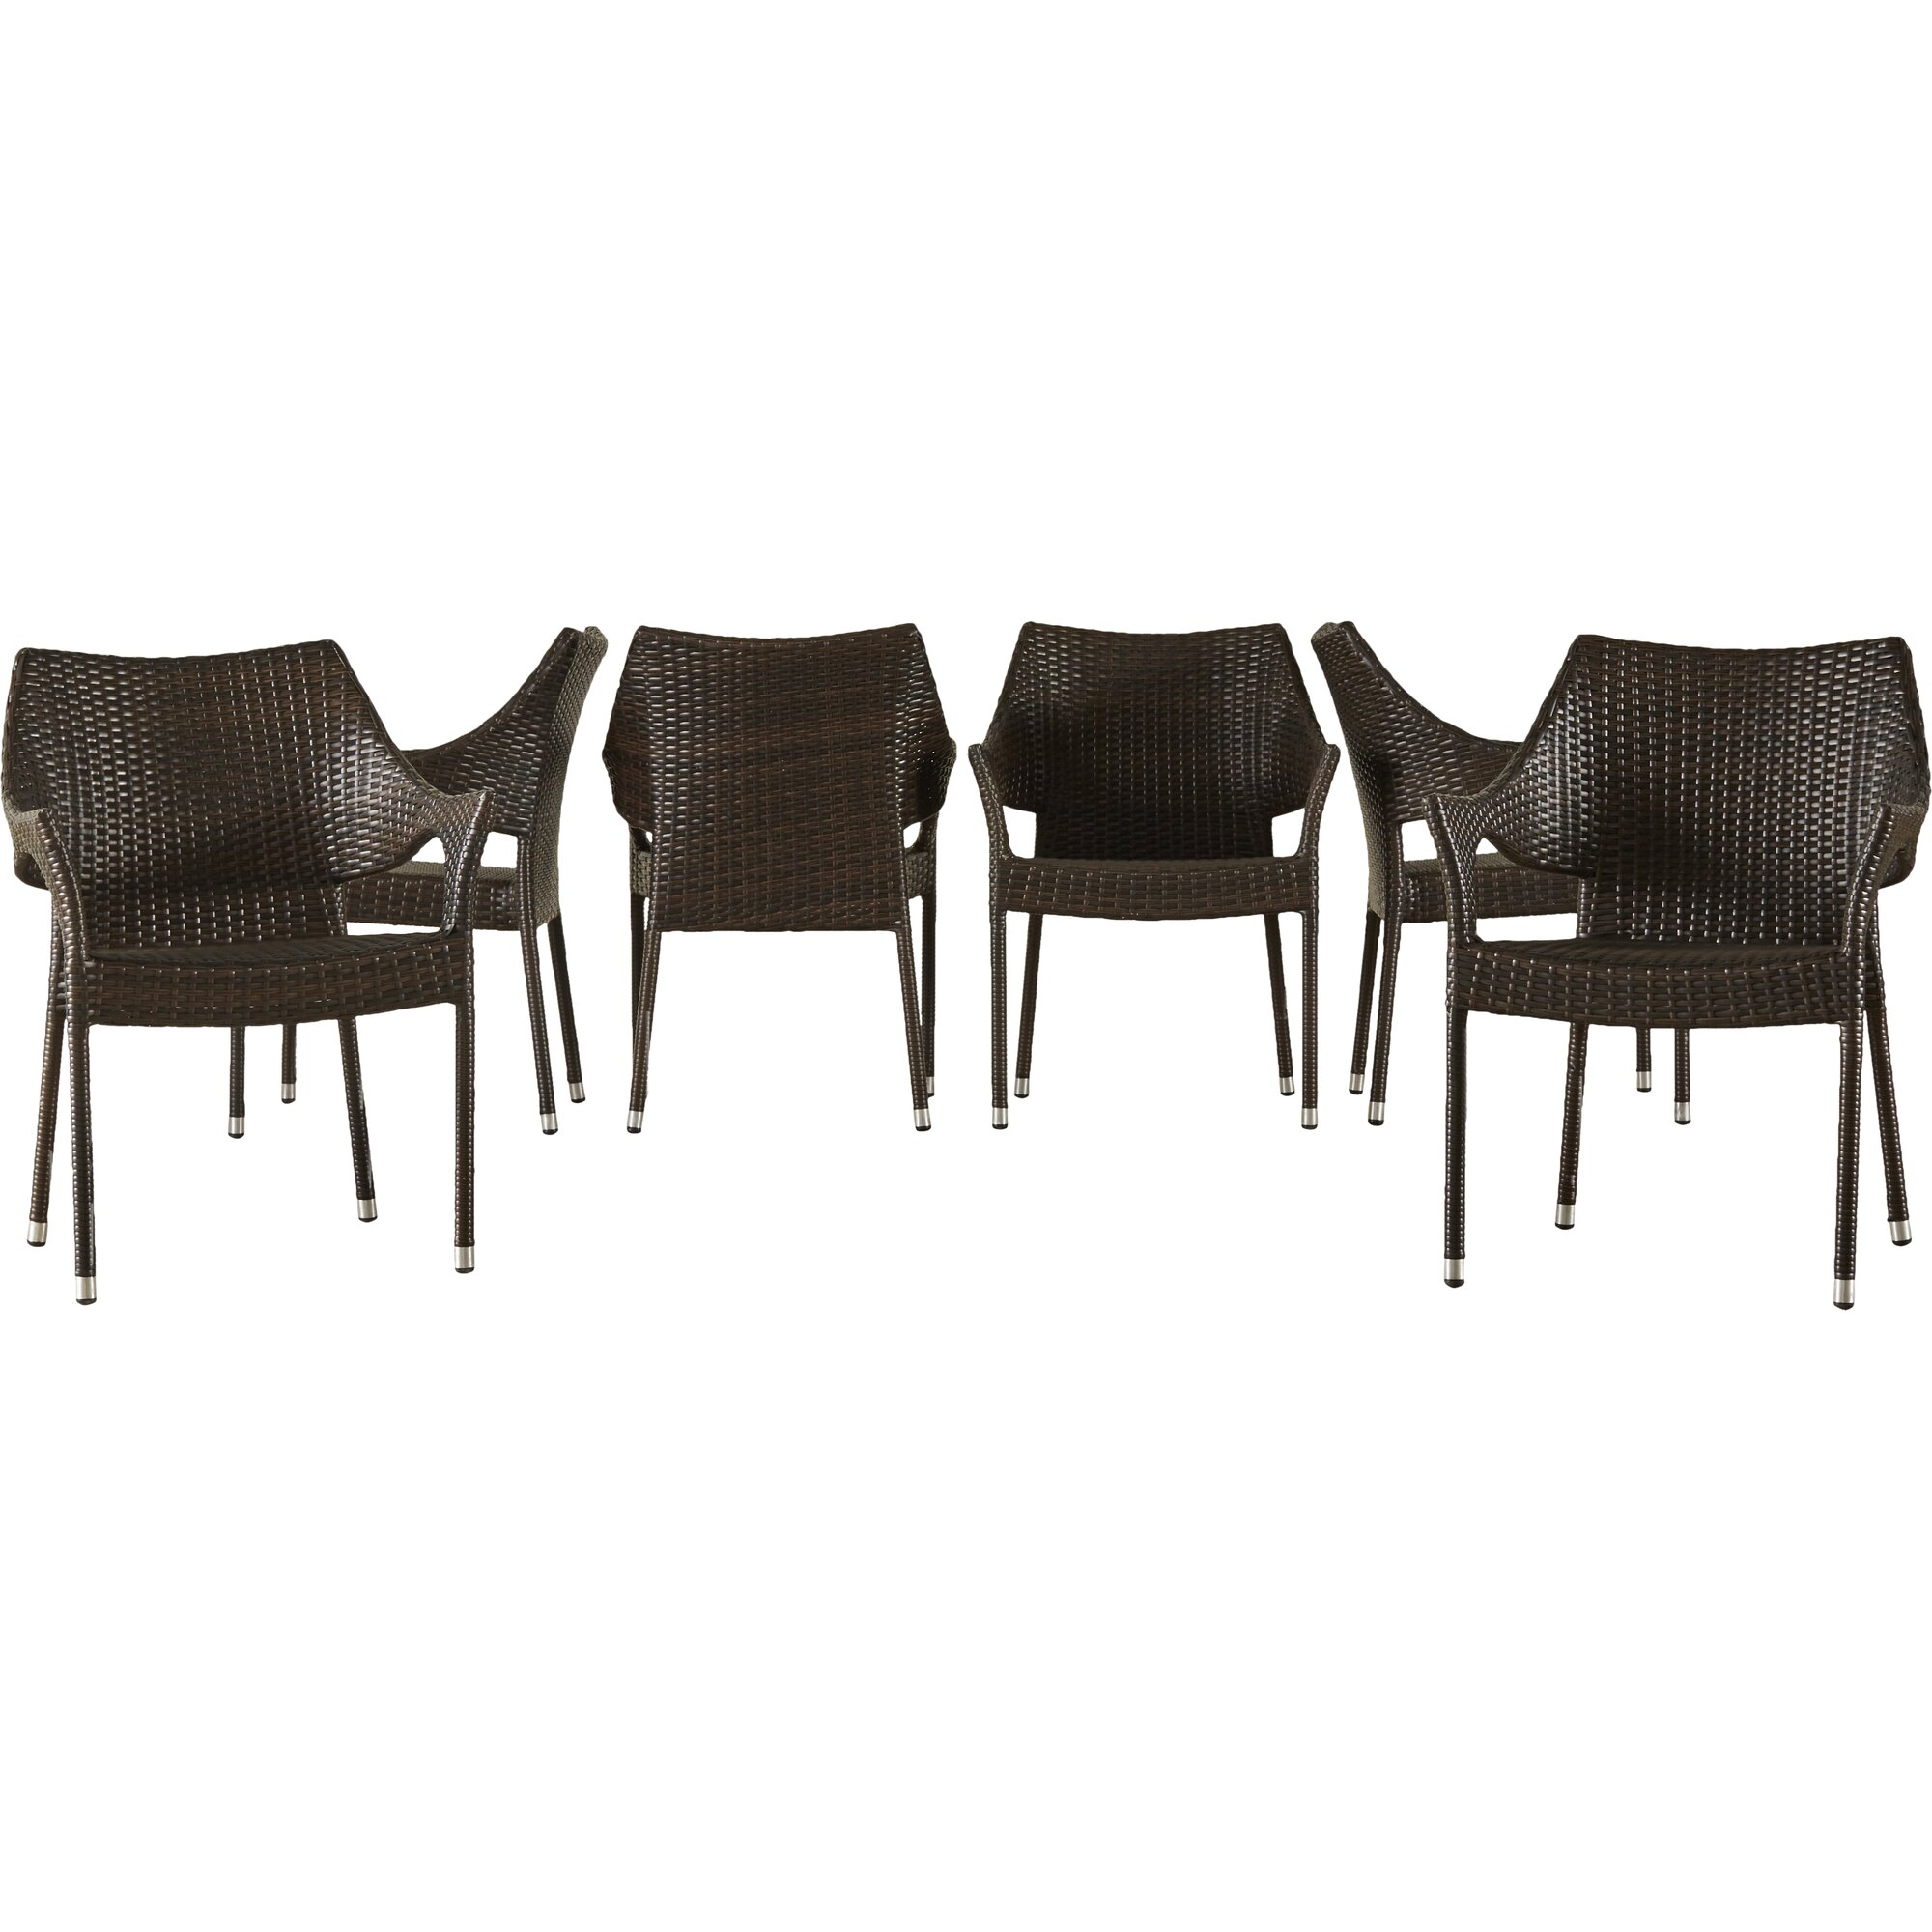 Nevius 7 piece dining set reviews allmodern for 7 piece dining set